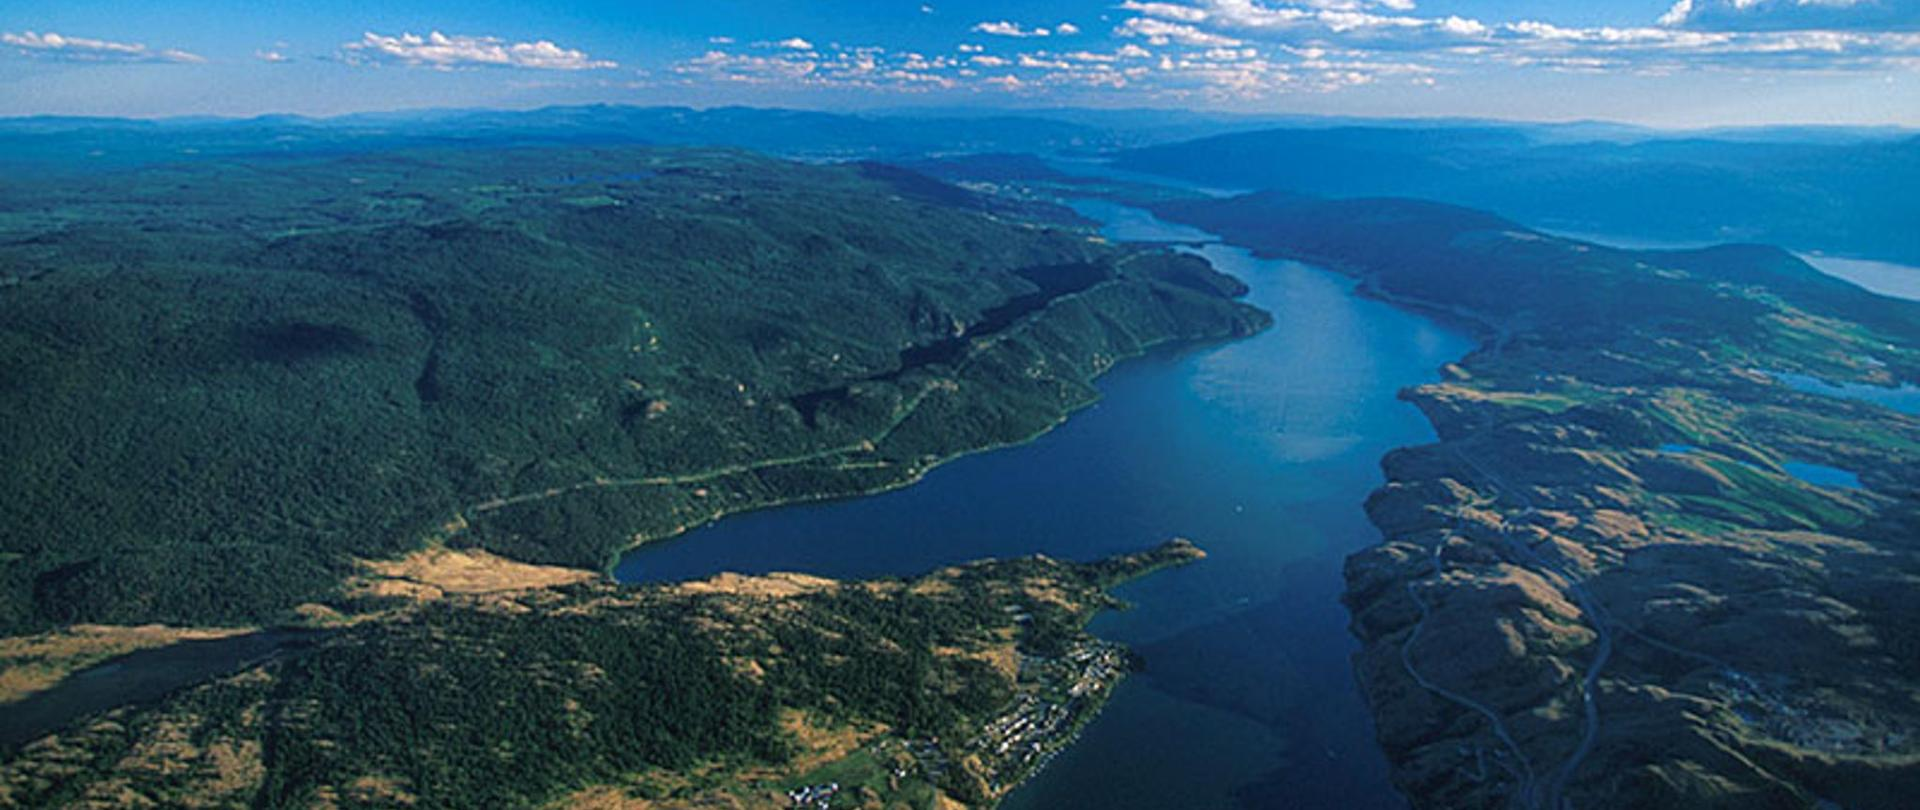 vernon-kalamalka-lake-2-okanagan-british-columbia.jpg